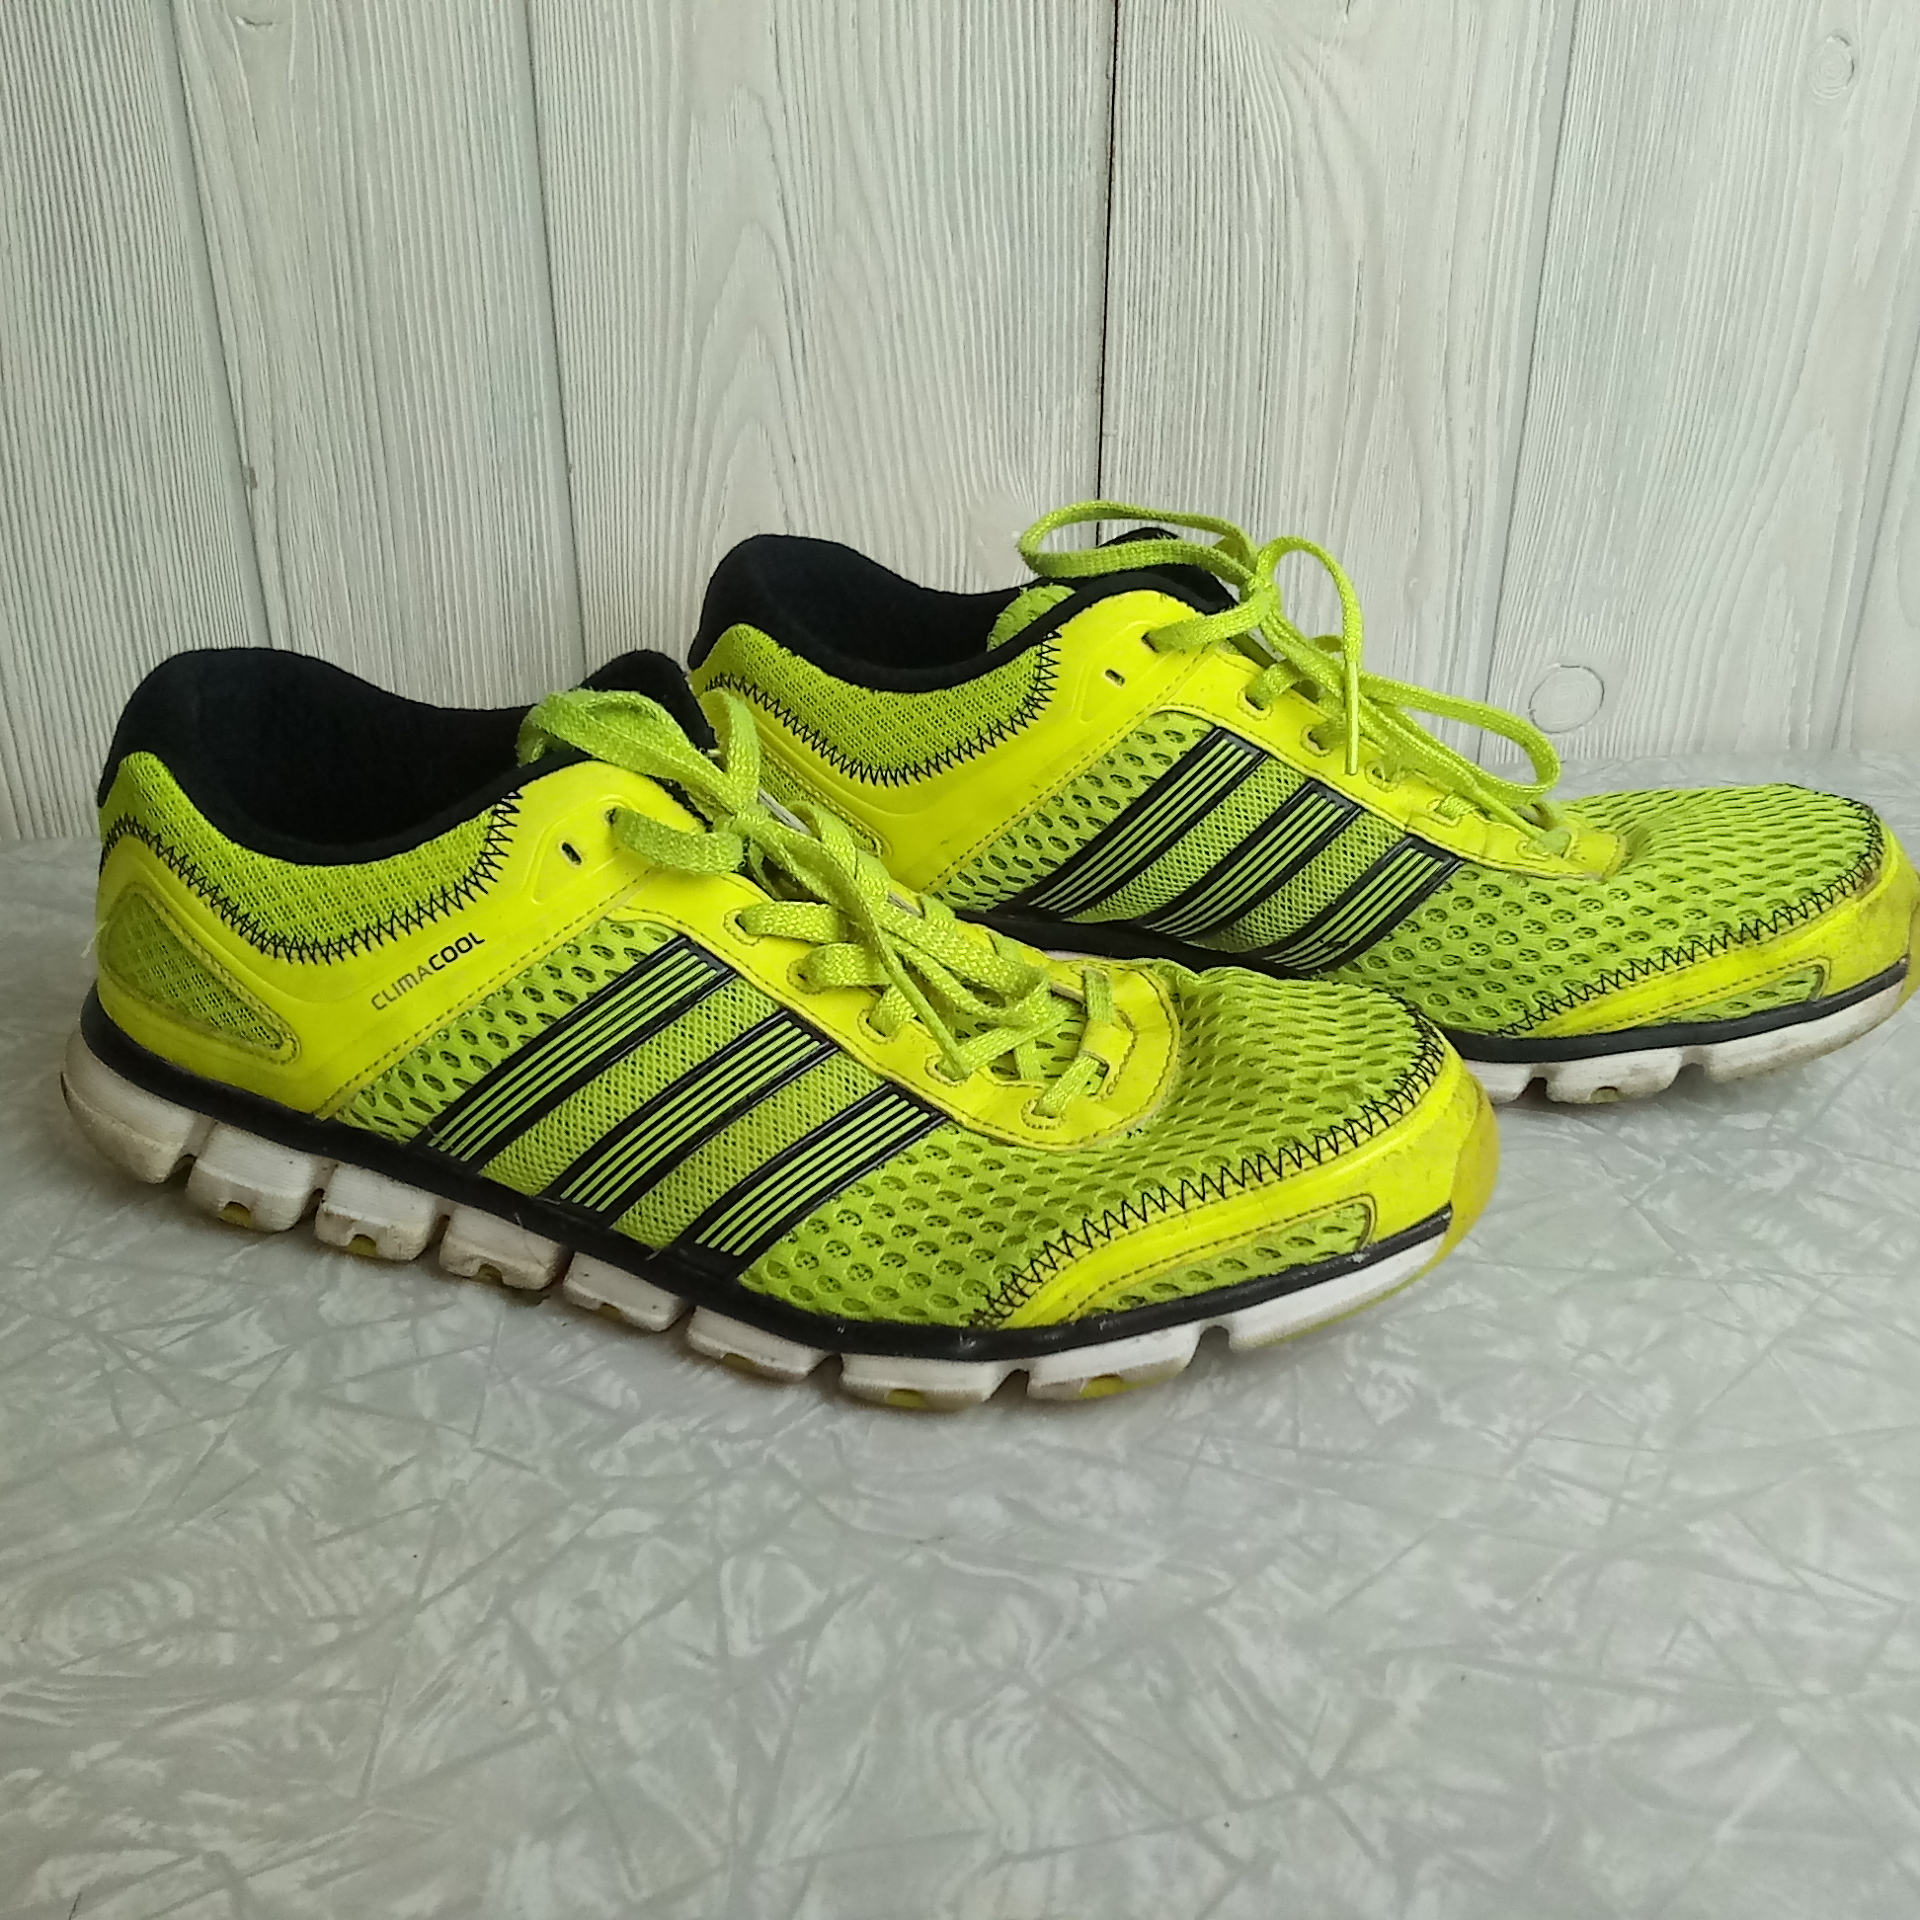 online retailer 69579 ad50c Adidas ClimaCool Men's 12 Neon Yellow Sneakers Shoes Aerated Mesh G59790